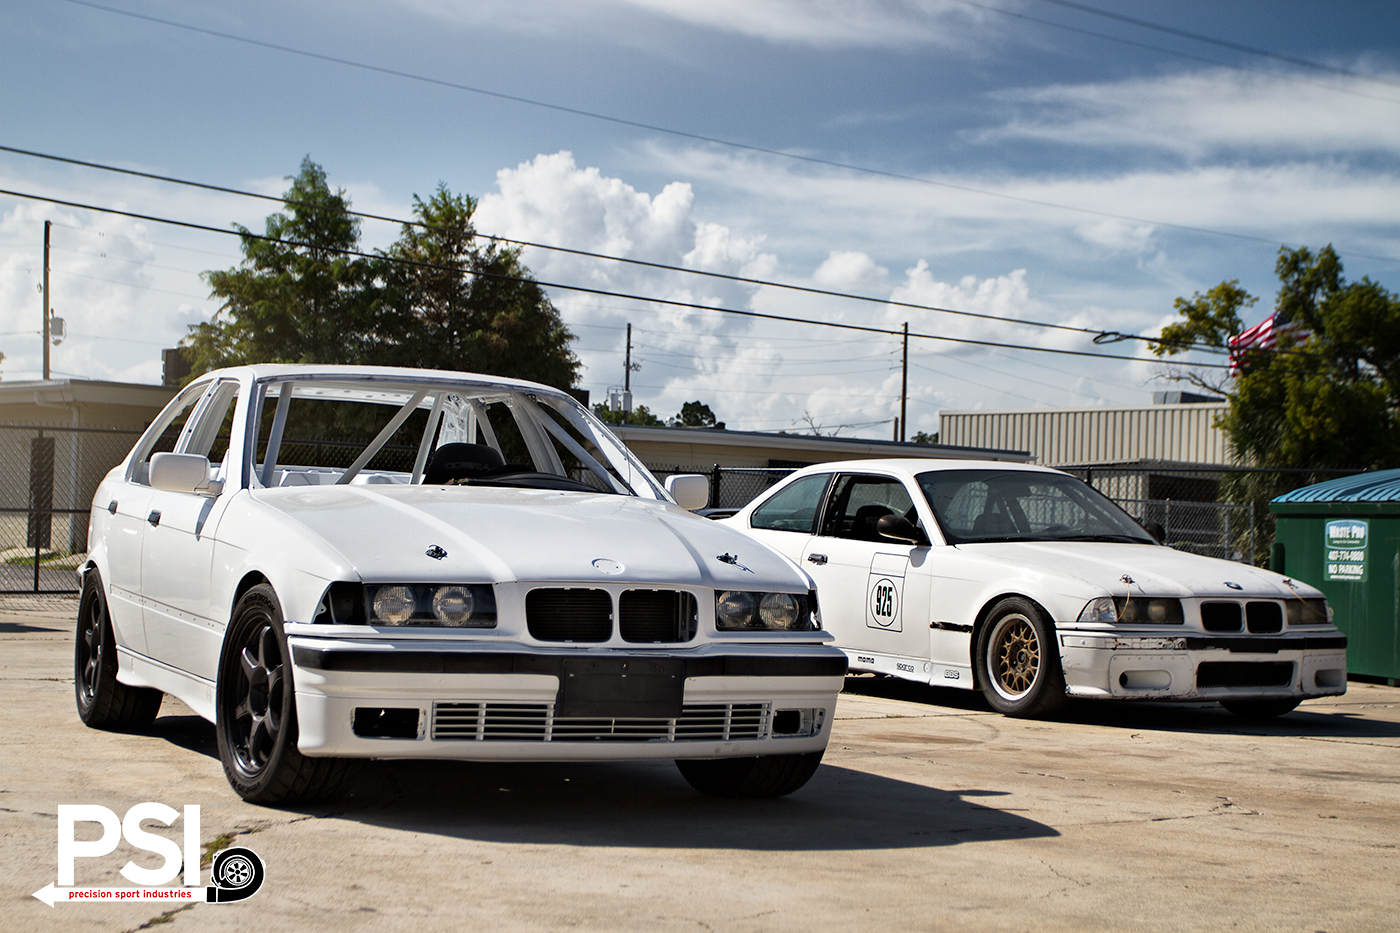 Bmw E36 3 Series Chumpcar Built By Psi Autoevolution